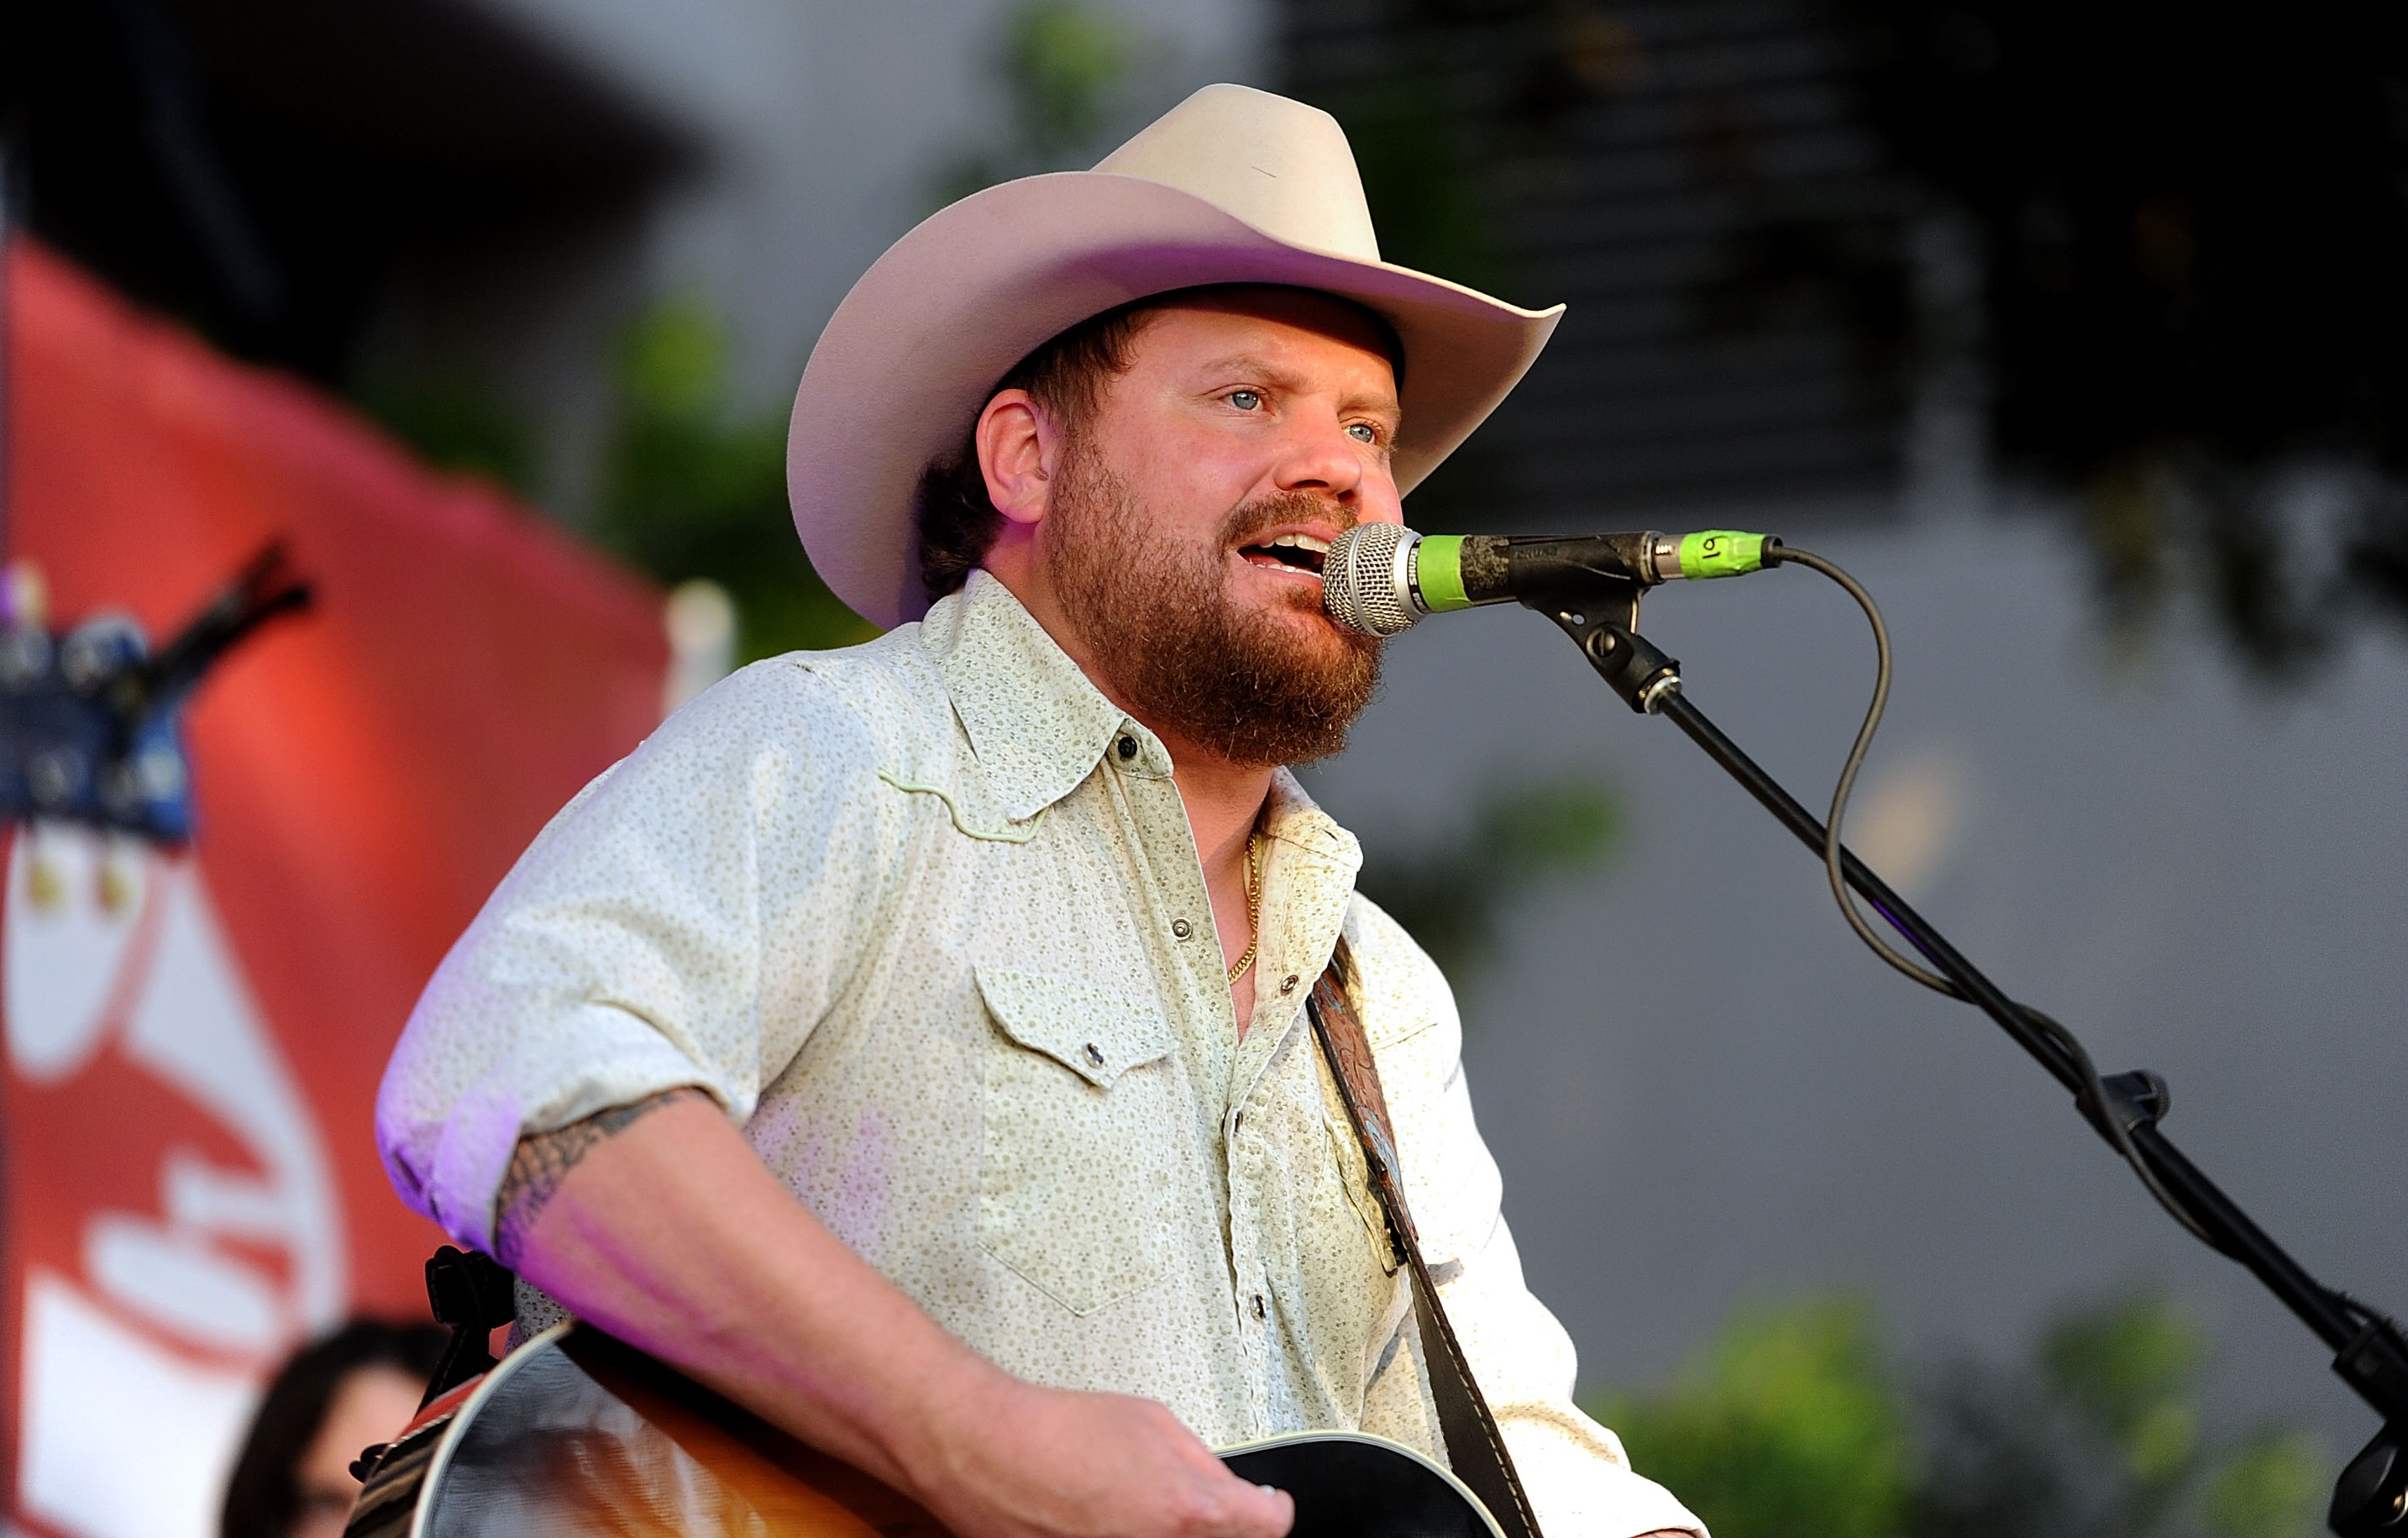 Randy Rogers and Wife Expecting Baby Girl